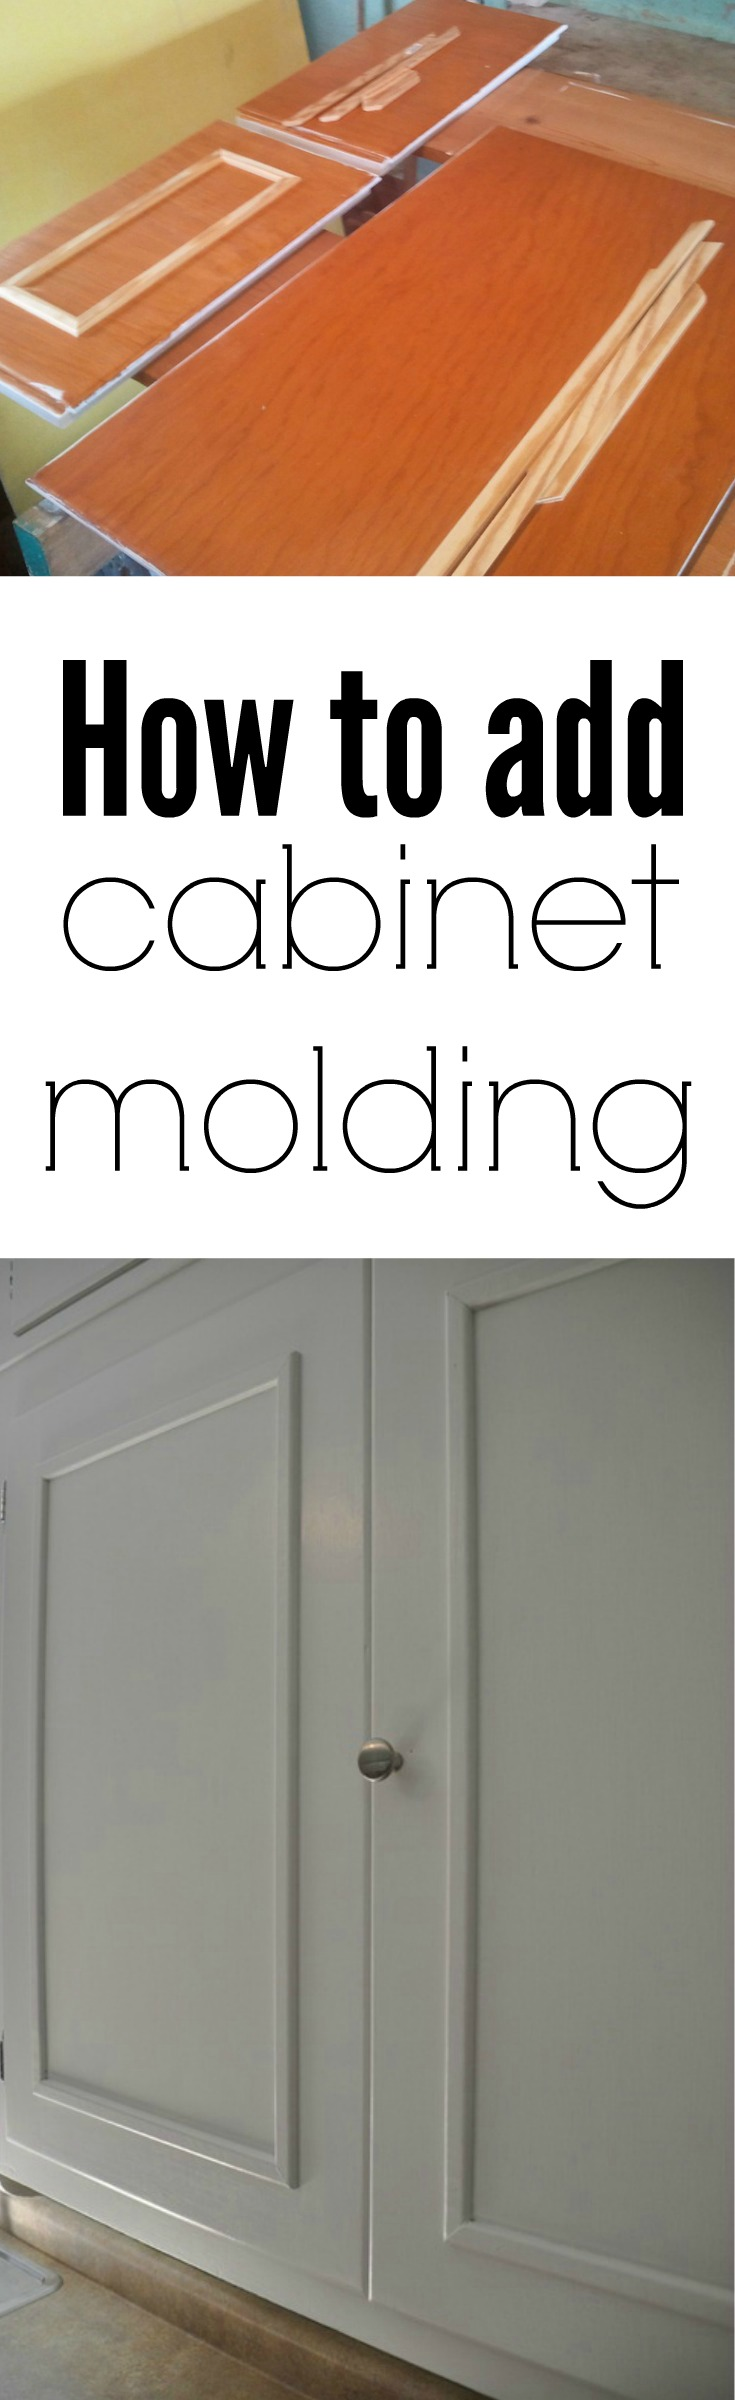 how to add cabinet molding decor and the dog adding moulding to kitchen cabinets before and after